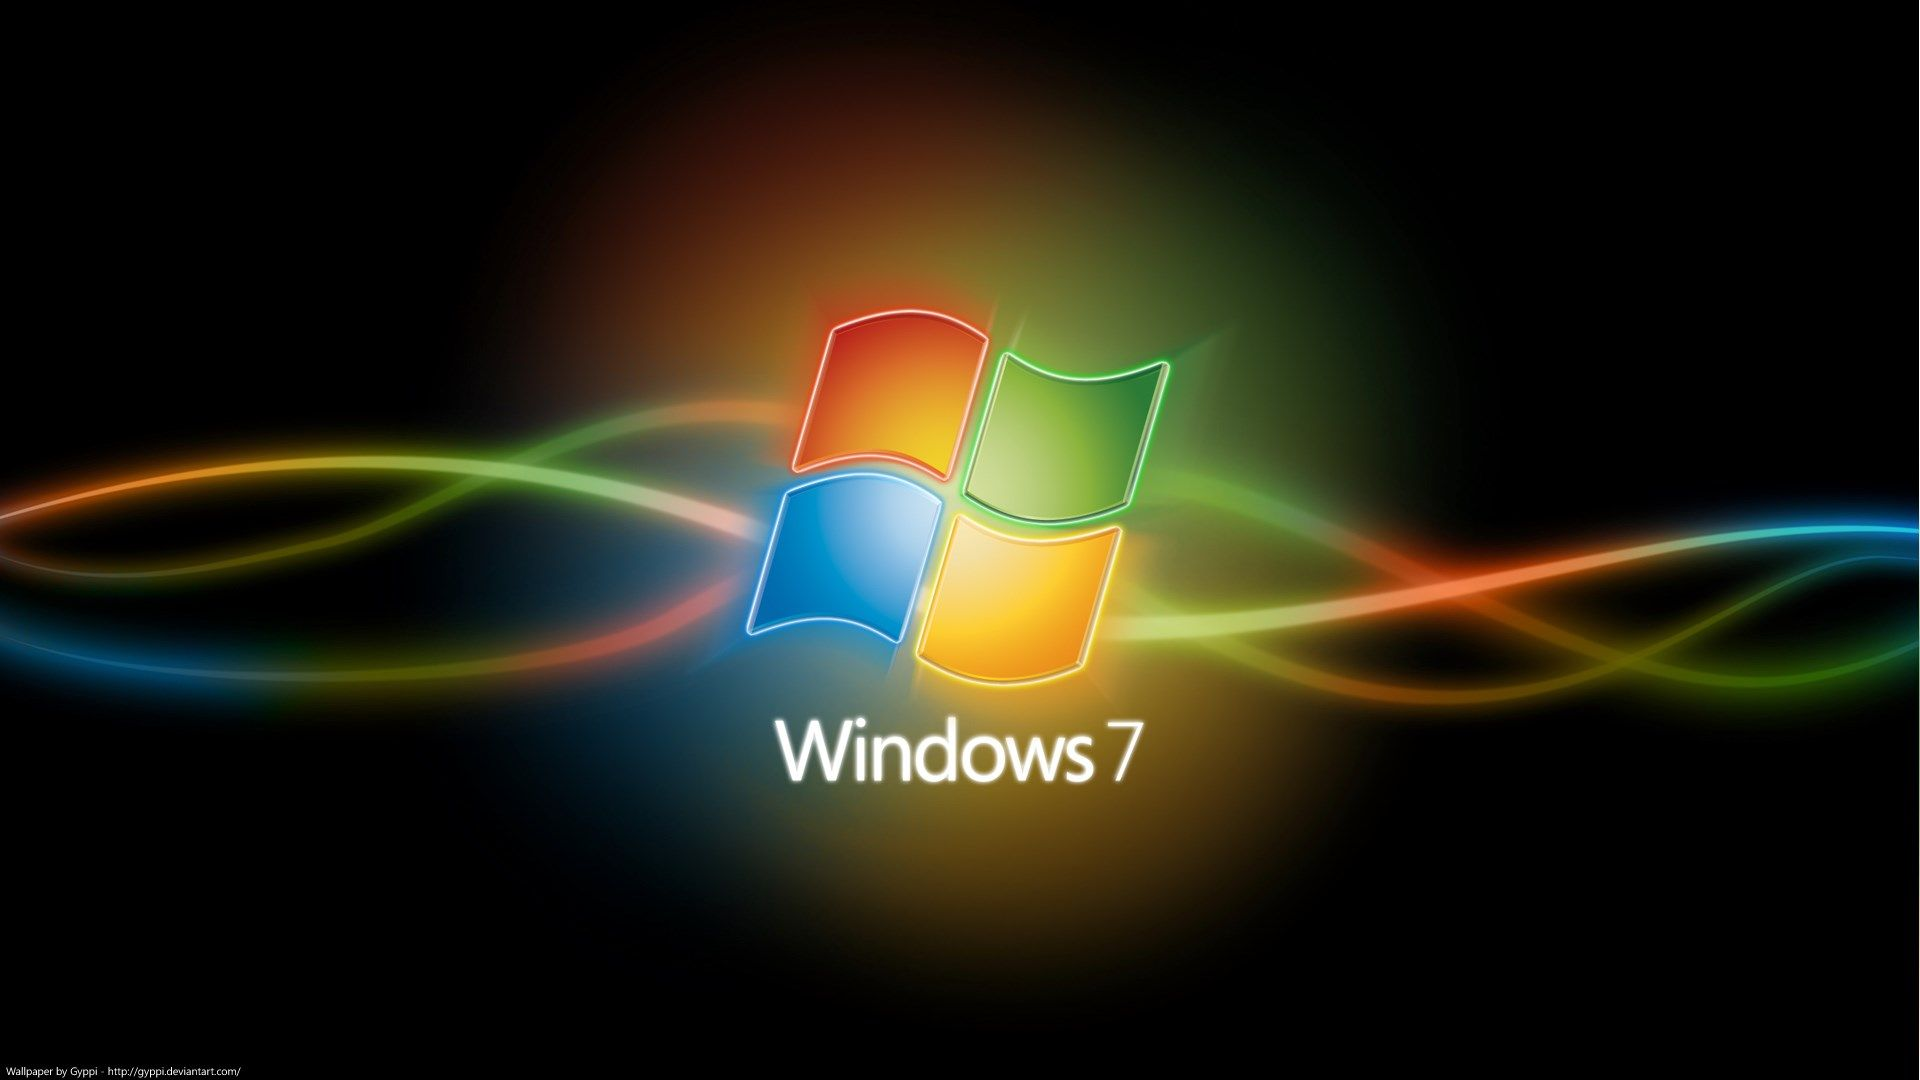 Px High Resolution Wallpapers Widescreen Windows 7